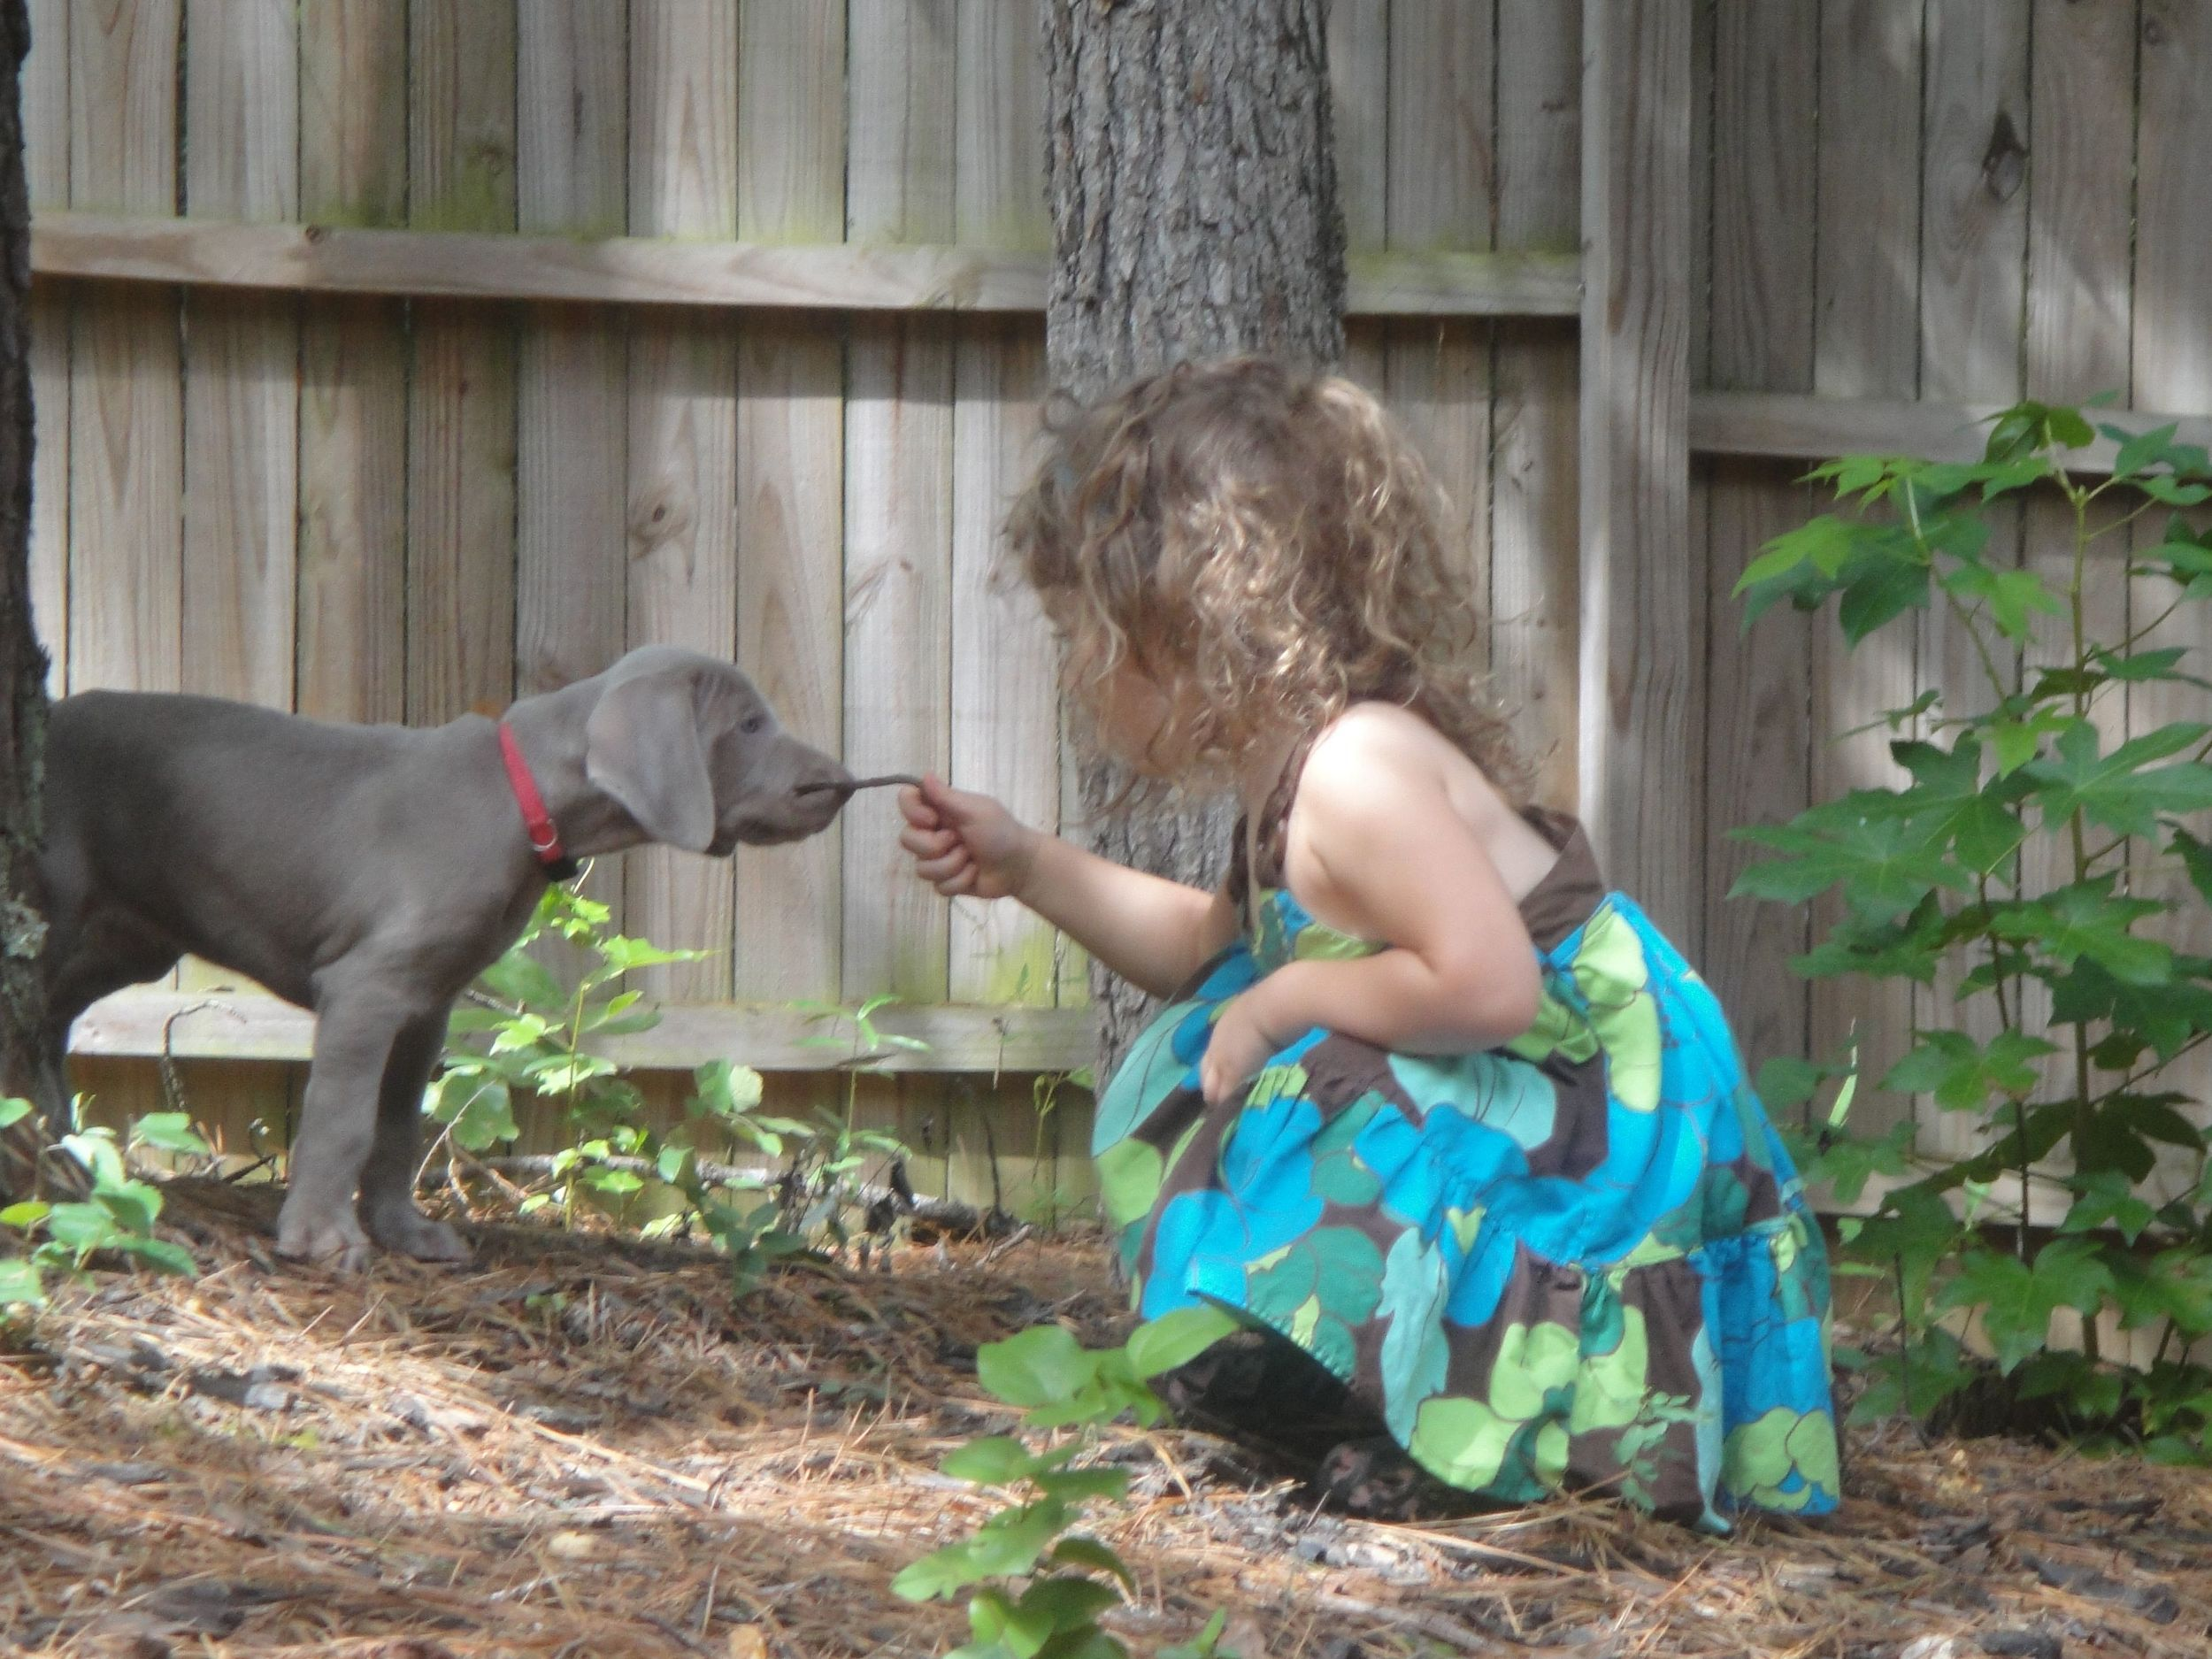 Teaching dogs at a young age where their place is within the pack is essential because none to soon this puppy will be twice the size of this child and NO ONE likes to see a child knocked over by a wild ill behaved dog.